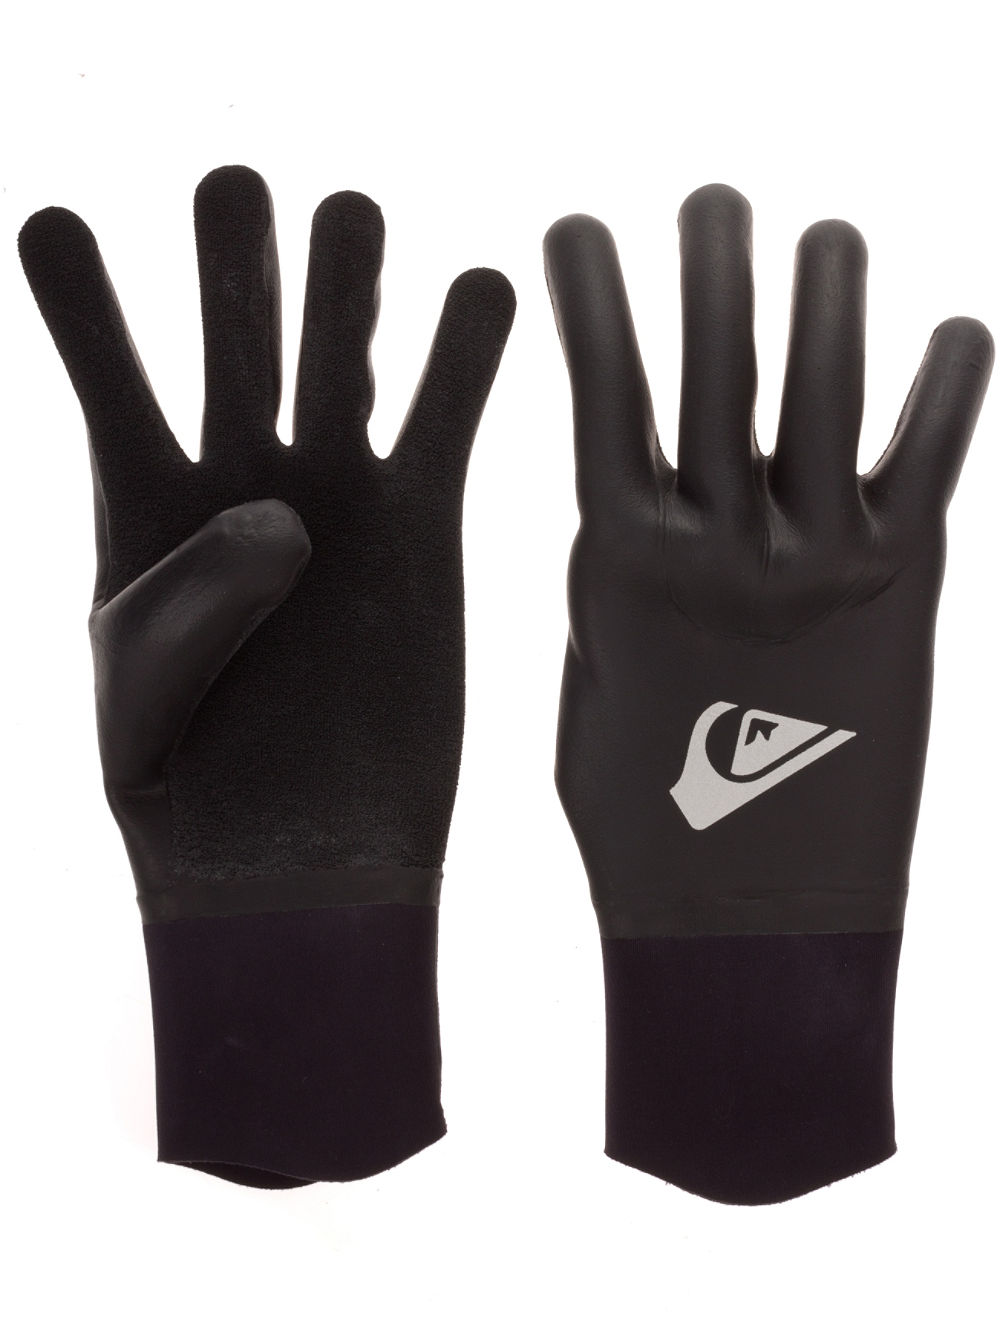 quiksilver-neogoo-2mm-5-finger-gloves